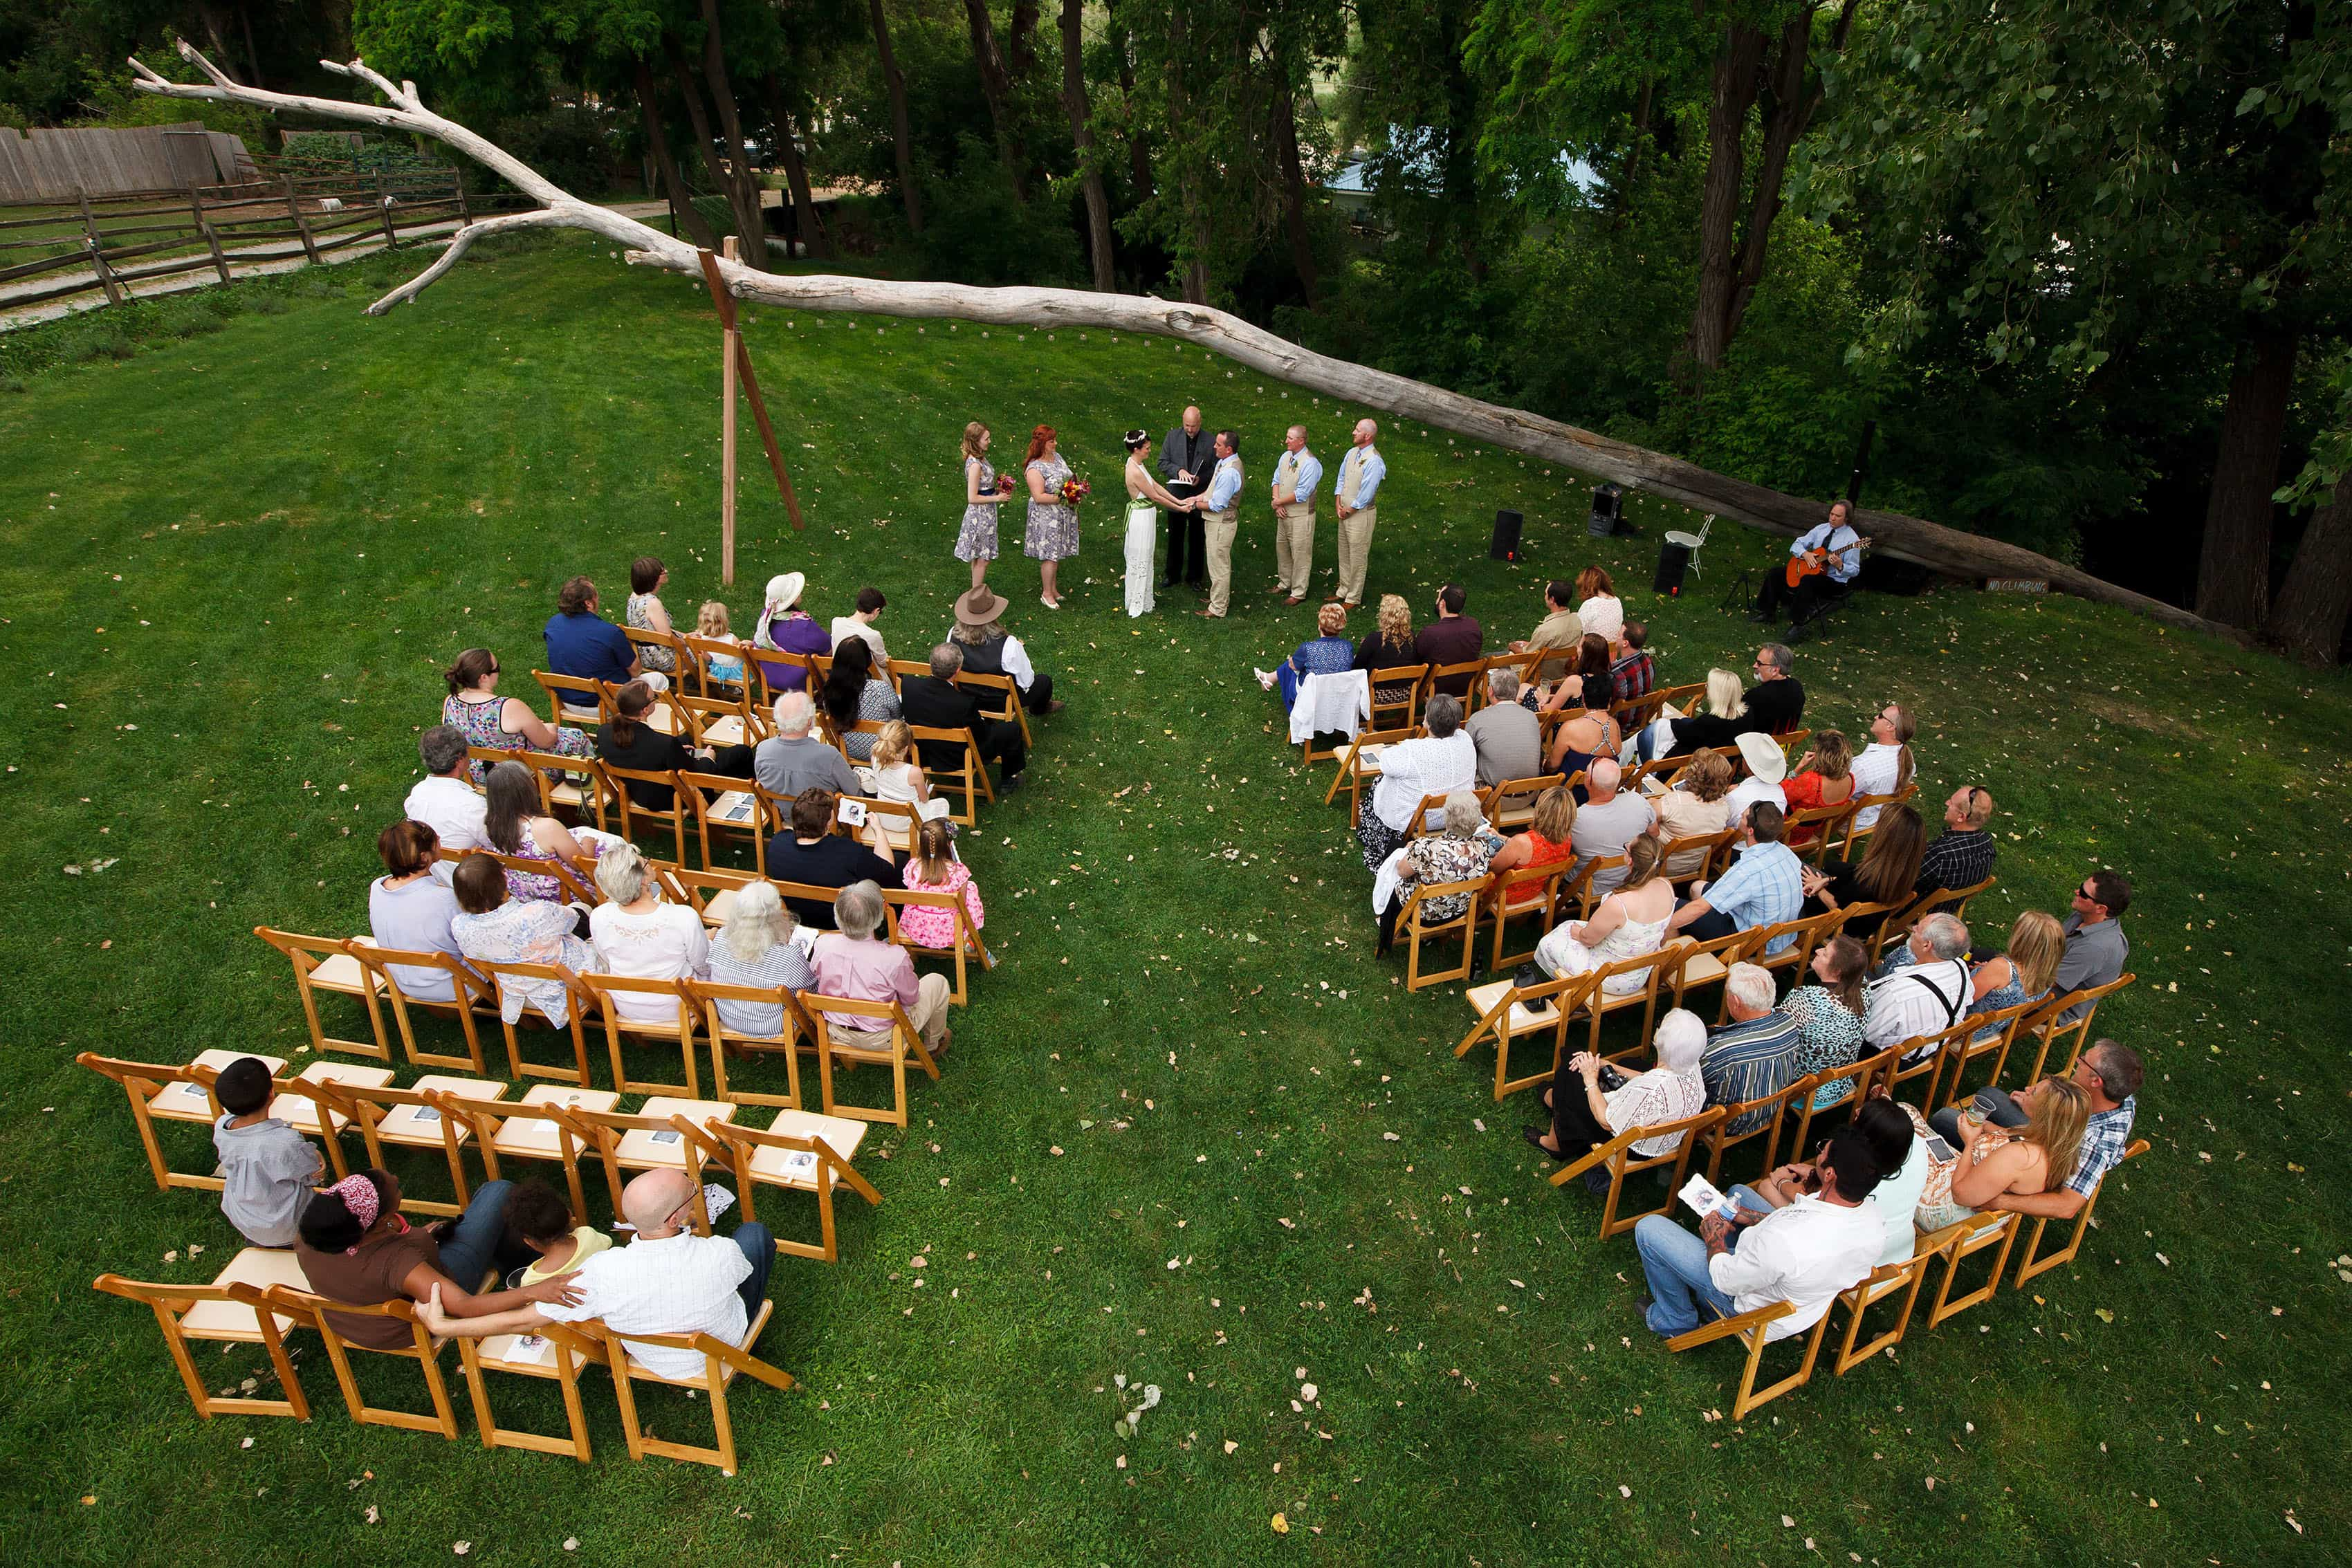 Outdoor Lyons Farmette wedding ceremony on the grass